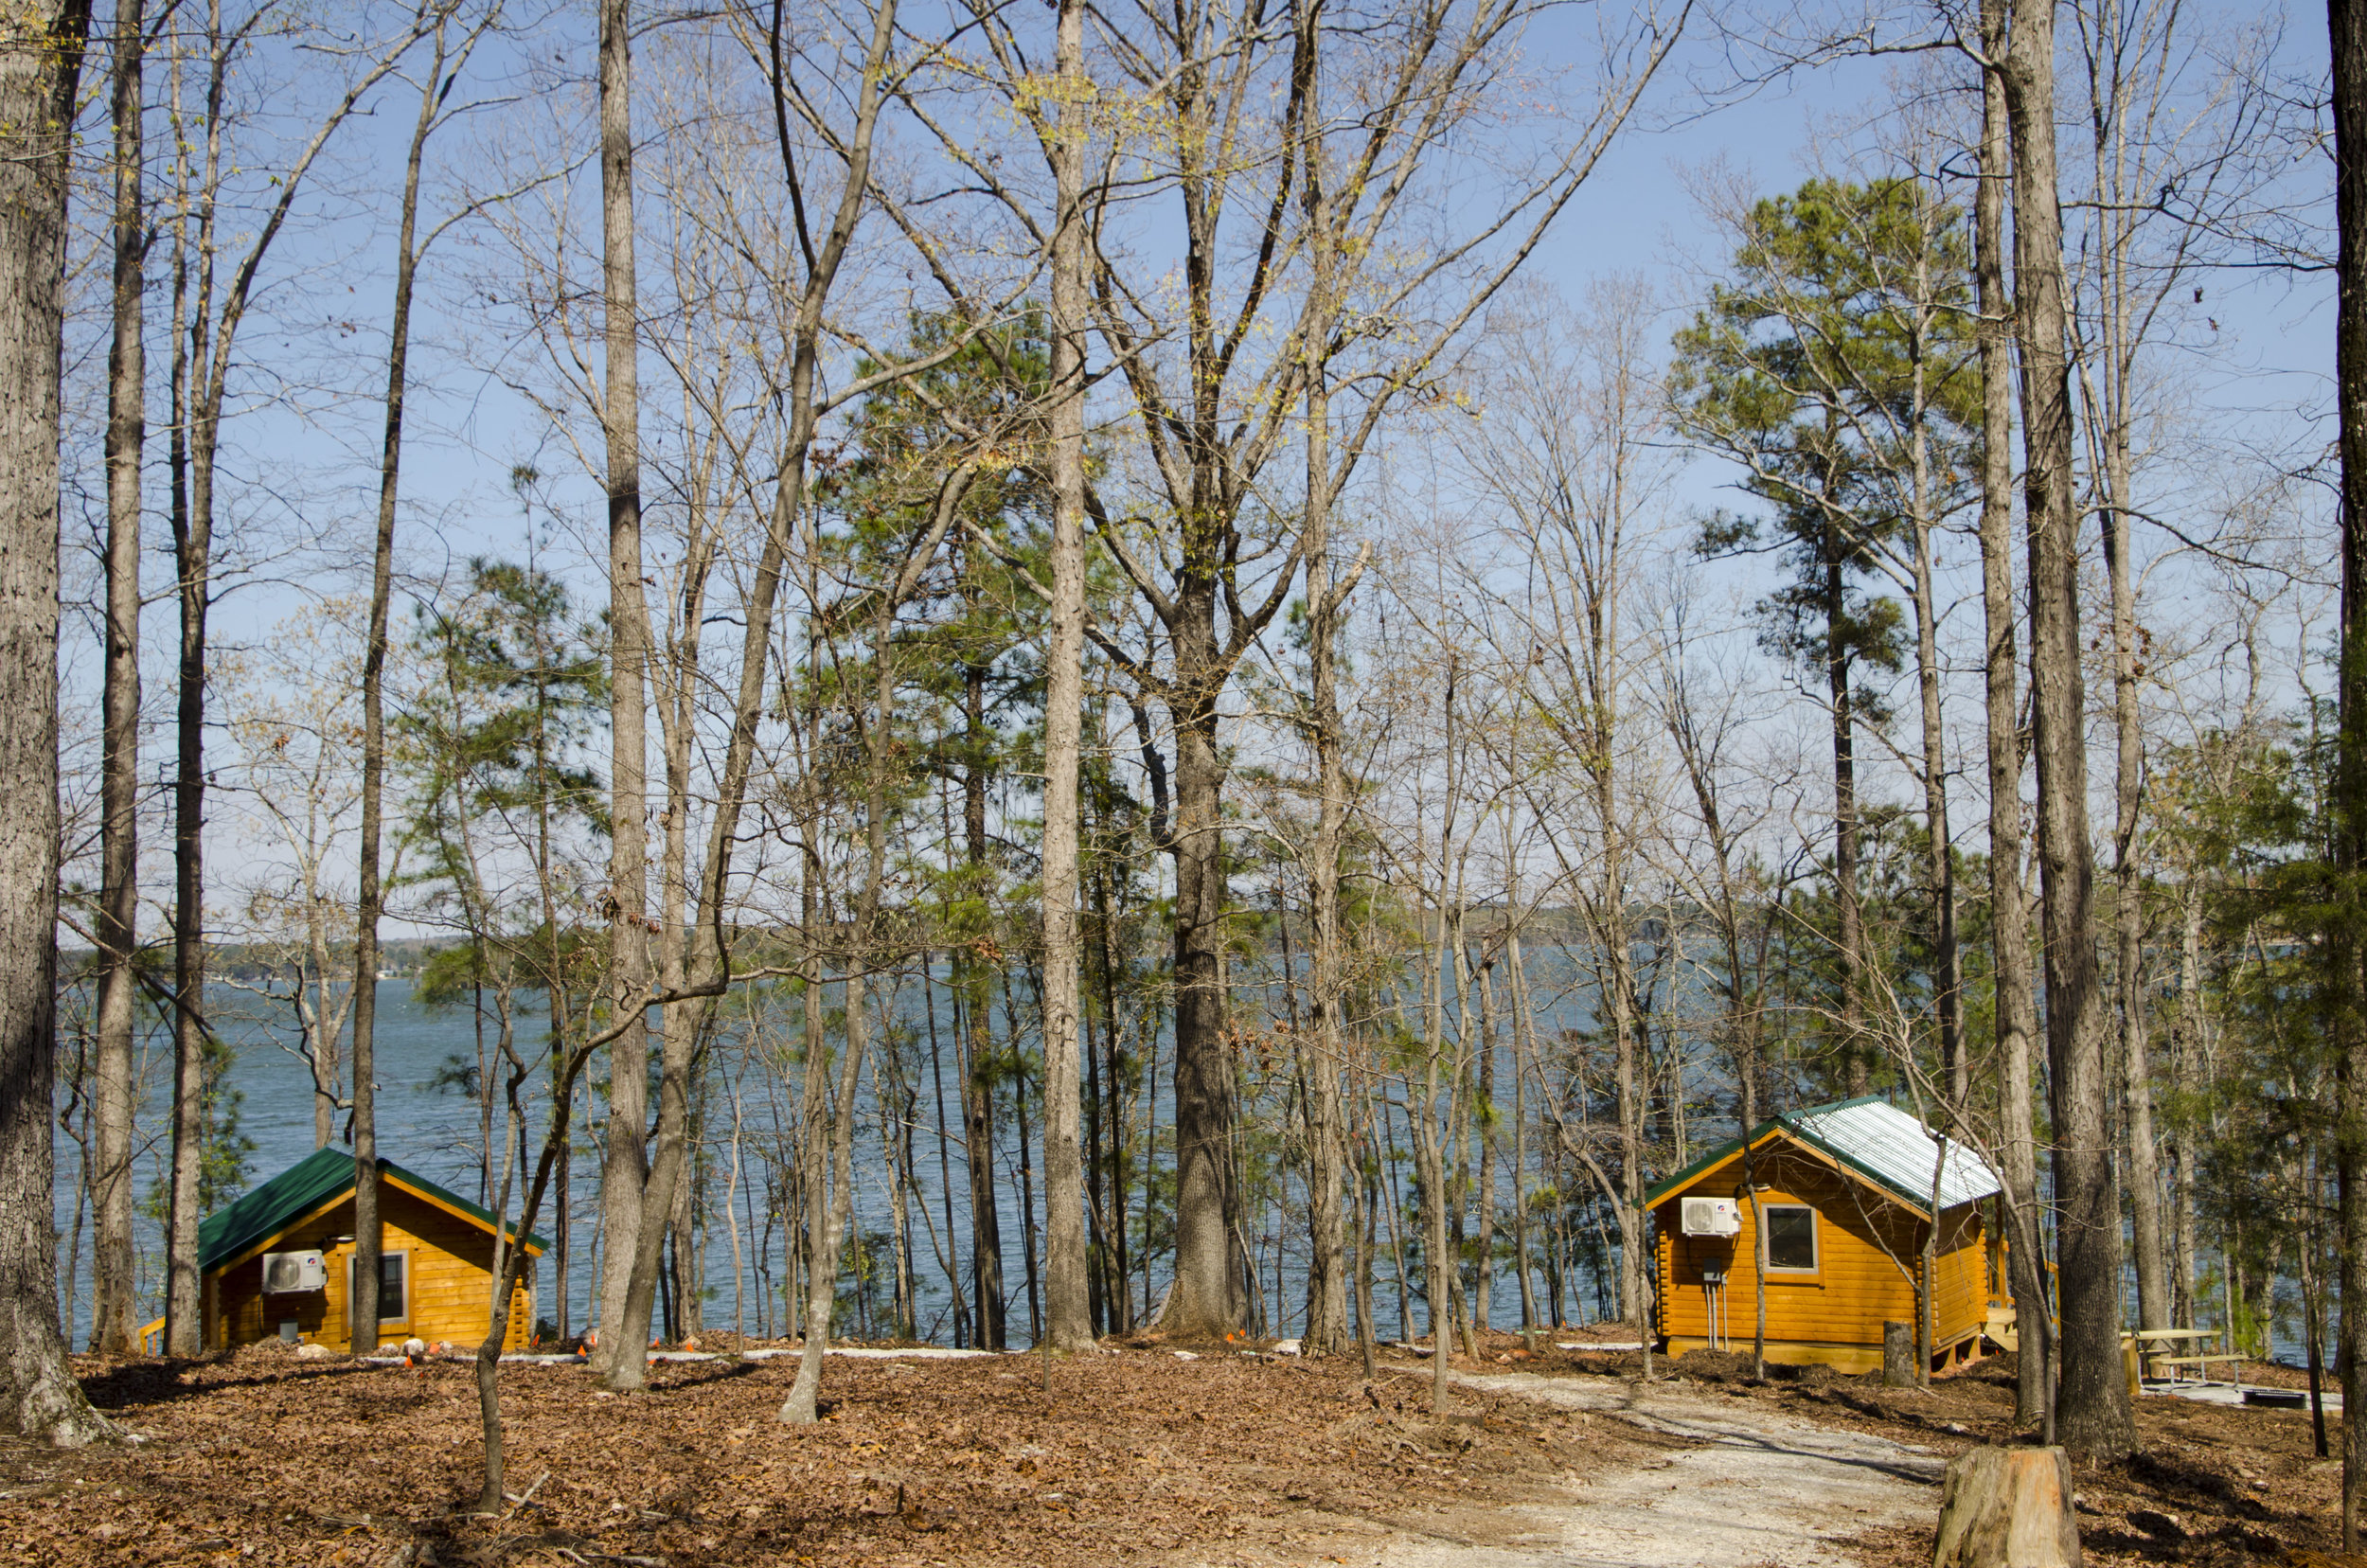 Coming soon: By this summer (June, 2018) park managers hope to have 10 small fishing cabins like these completed and ready for use by campers at Dreher Island State Park.